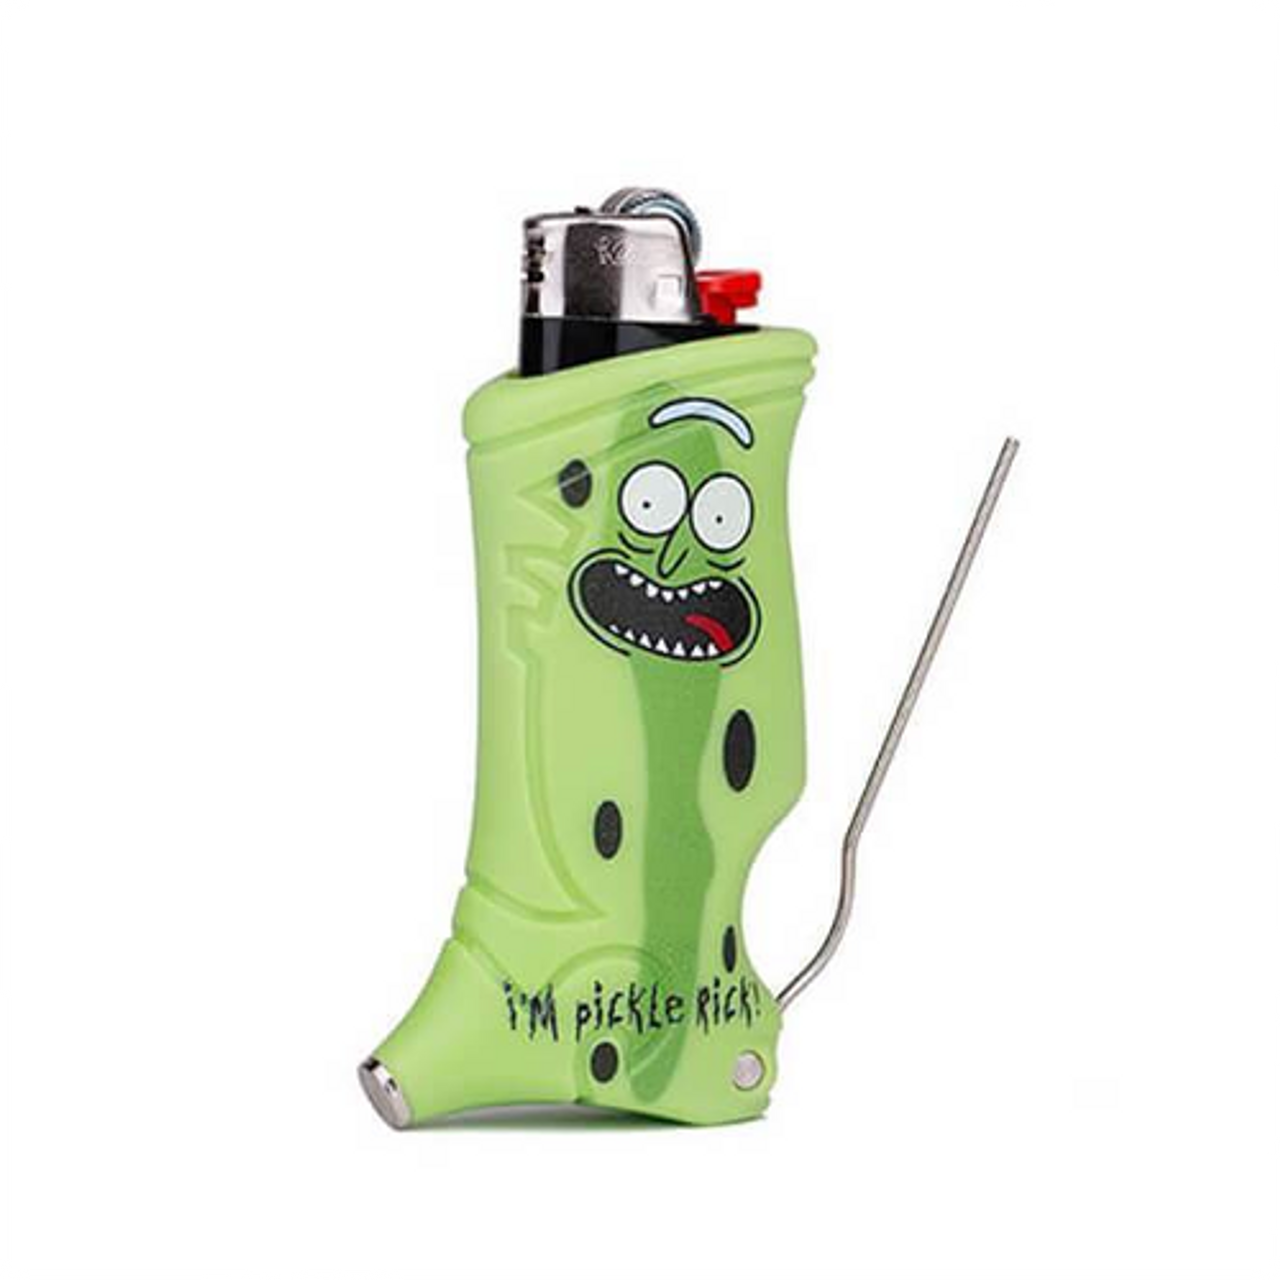 Toker Poker Special Edition - Rick and Morty Edition